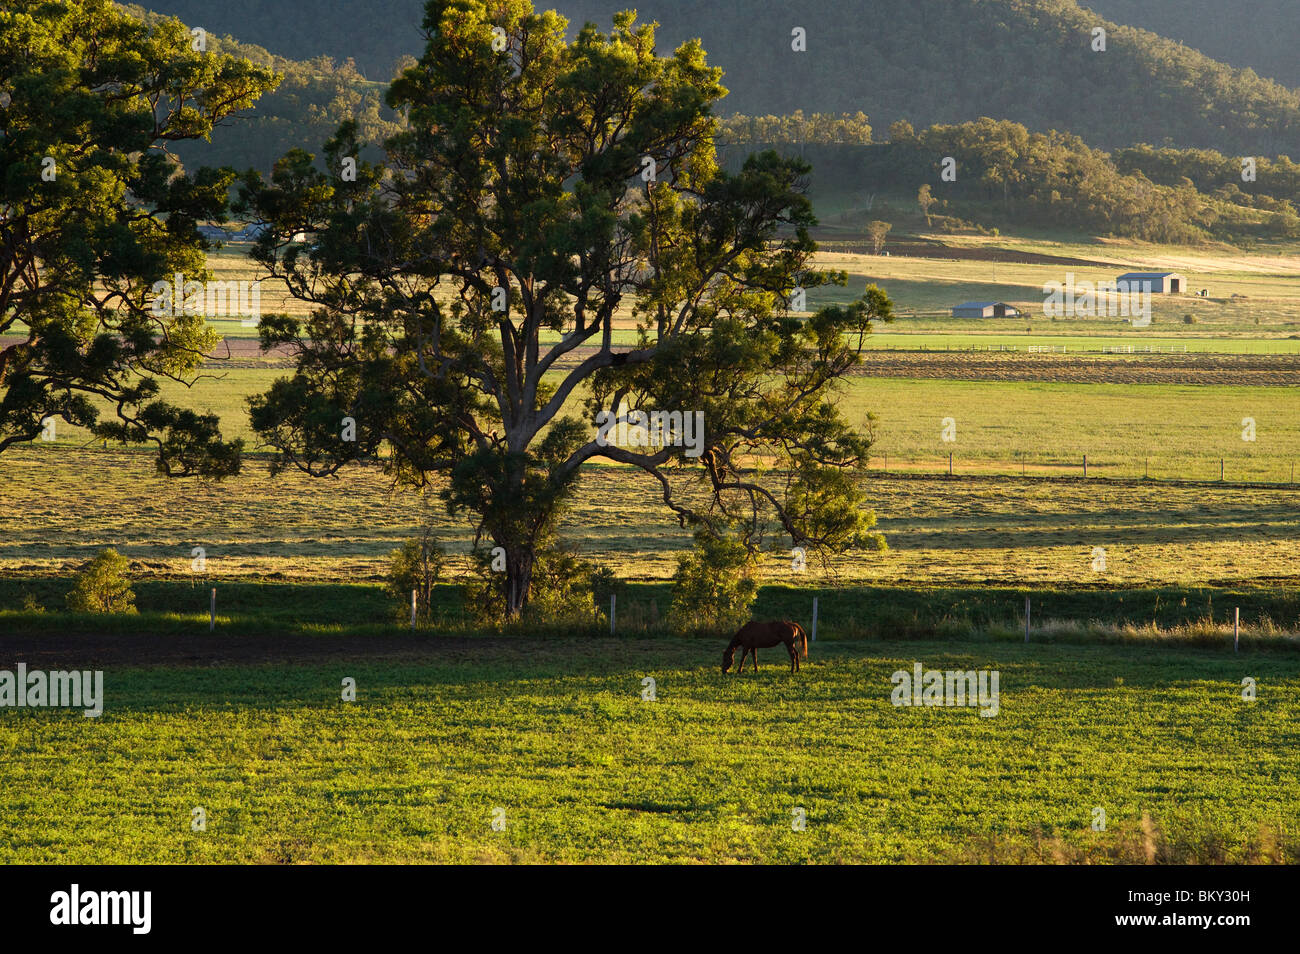 Farmland - Darling Downs Stockbild